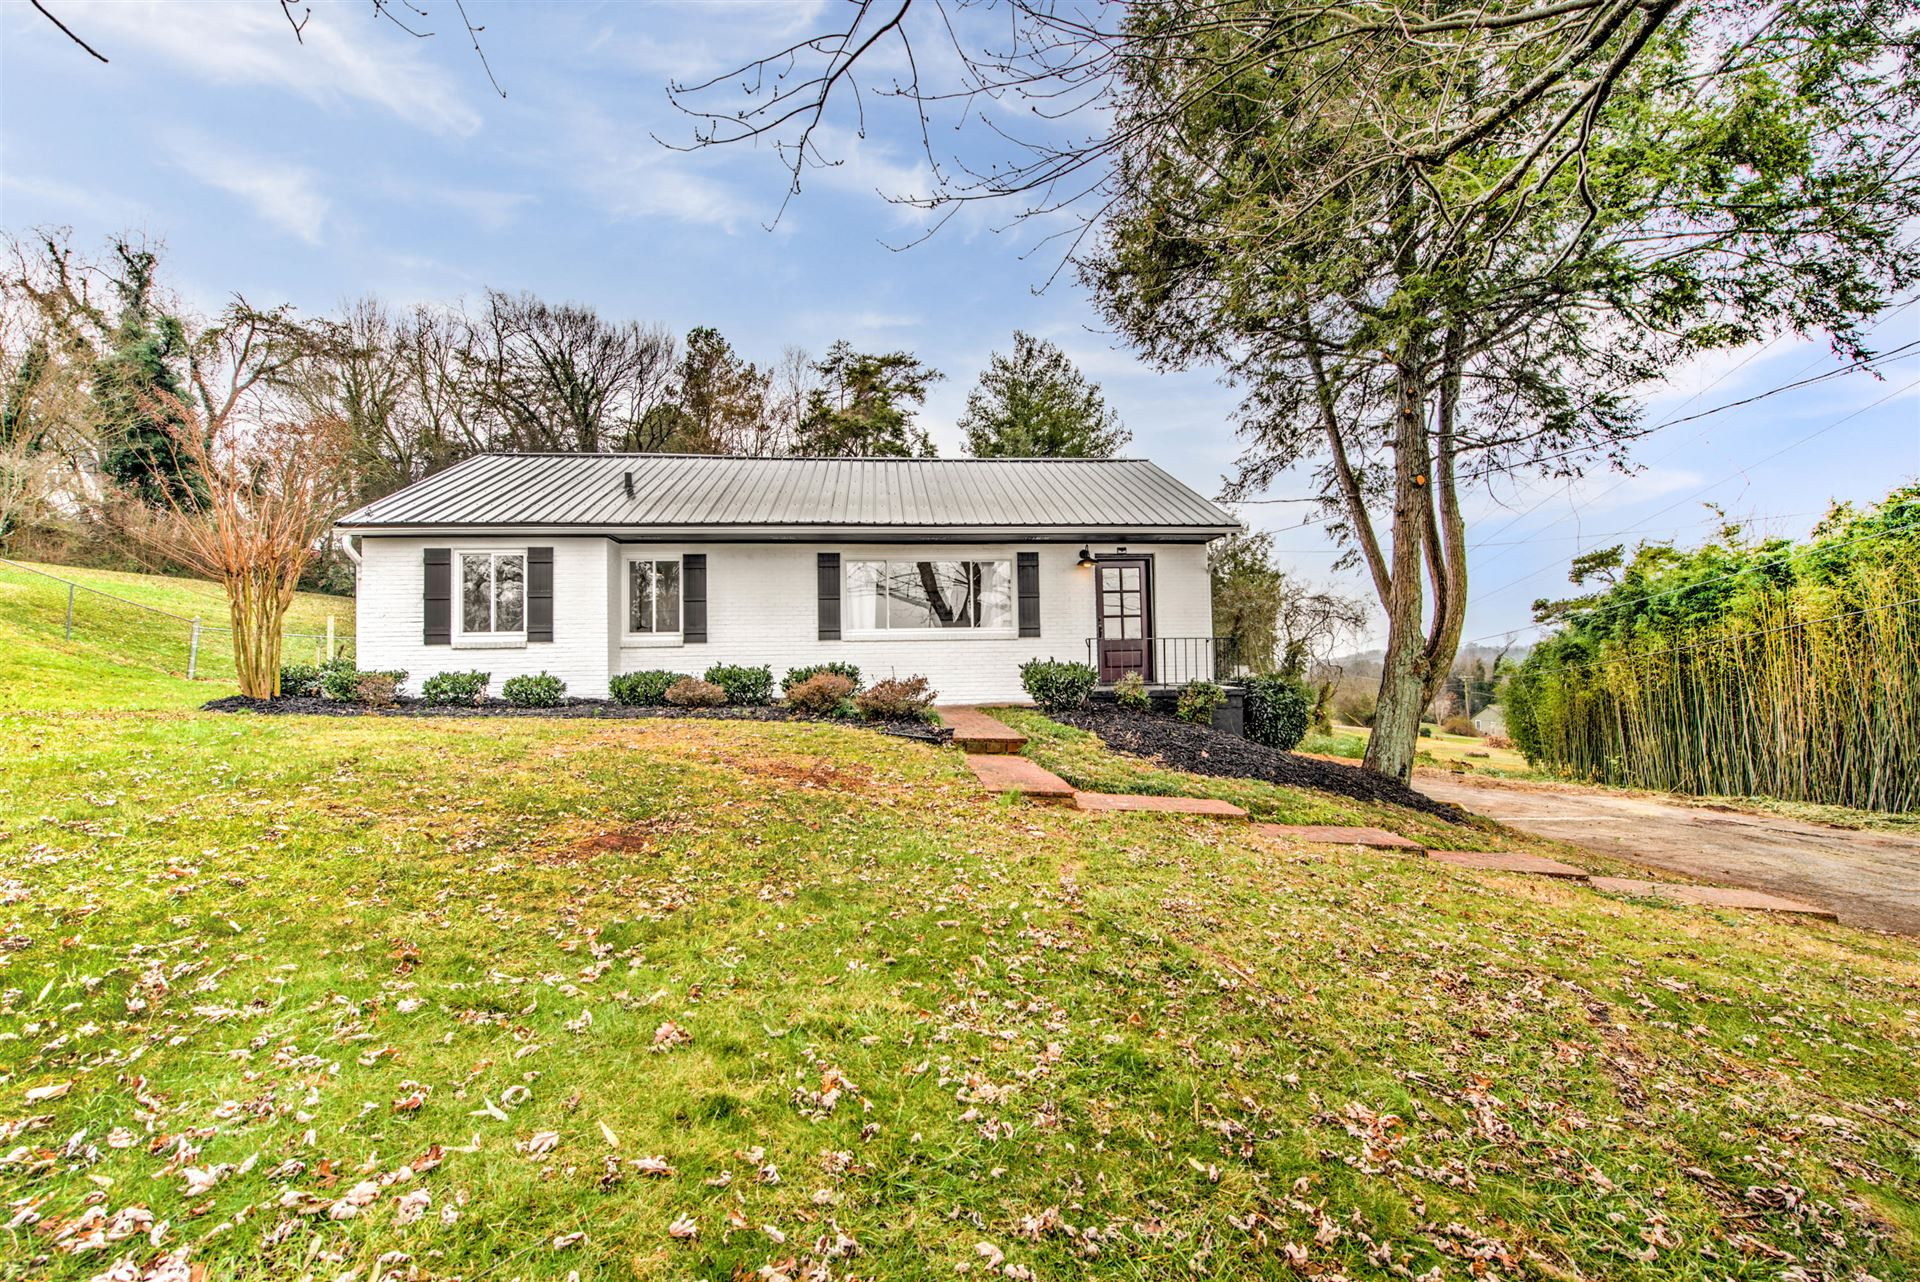 Photo of 1105 Forest Heights Rd, Knoxville, TN 37919 (MLS # 1140166)